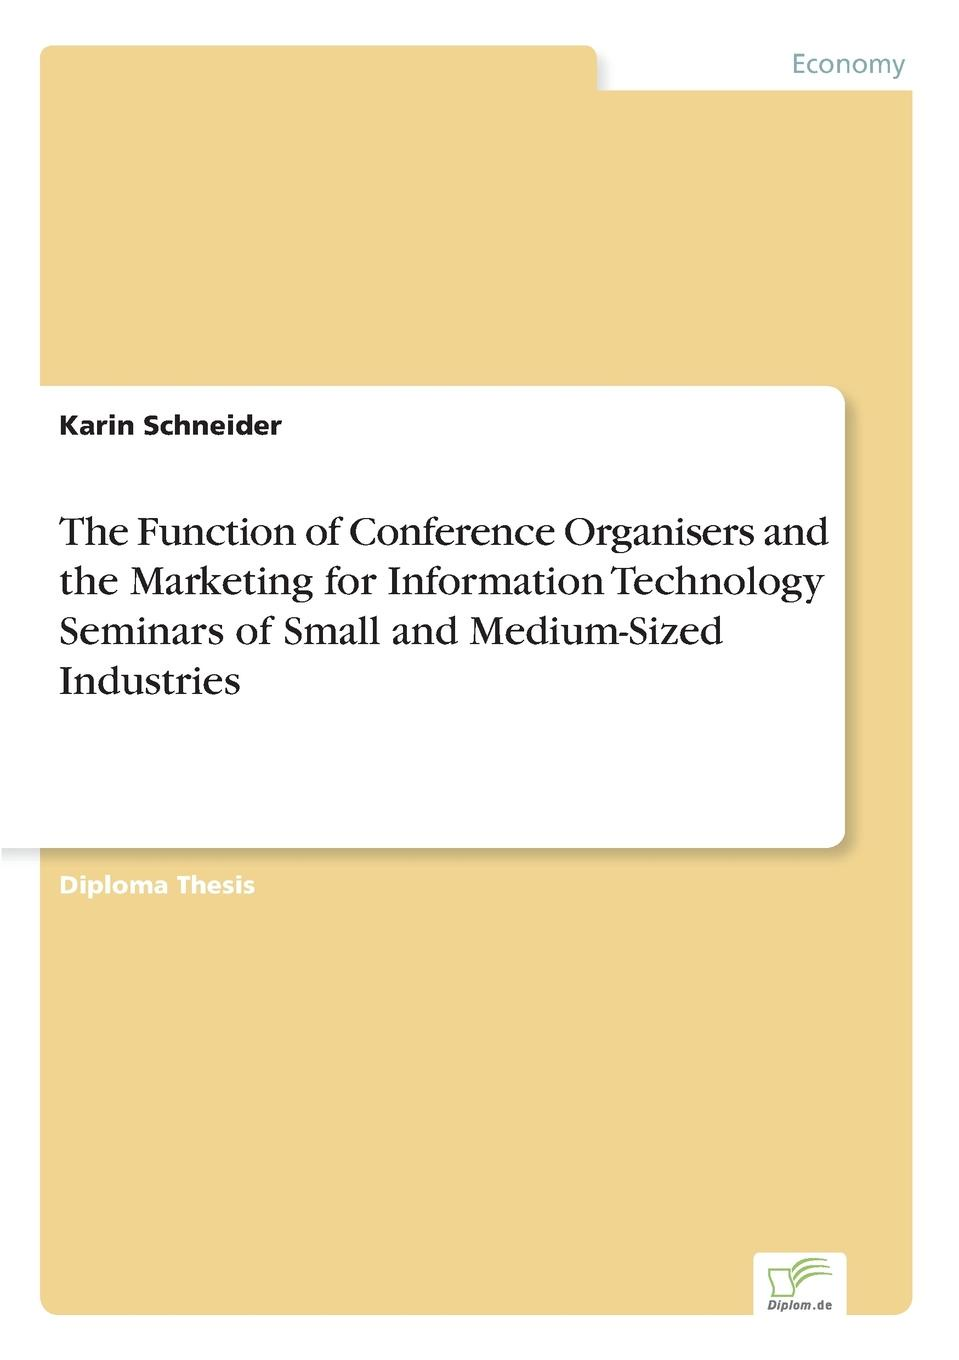 Karin Schneider The Function of Conference Organisers and the Marketing for Information Technology Seminars of Small and Medium-Sized Industries john jordan m information technology and innovation resources for growth in a connected world